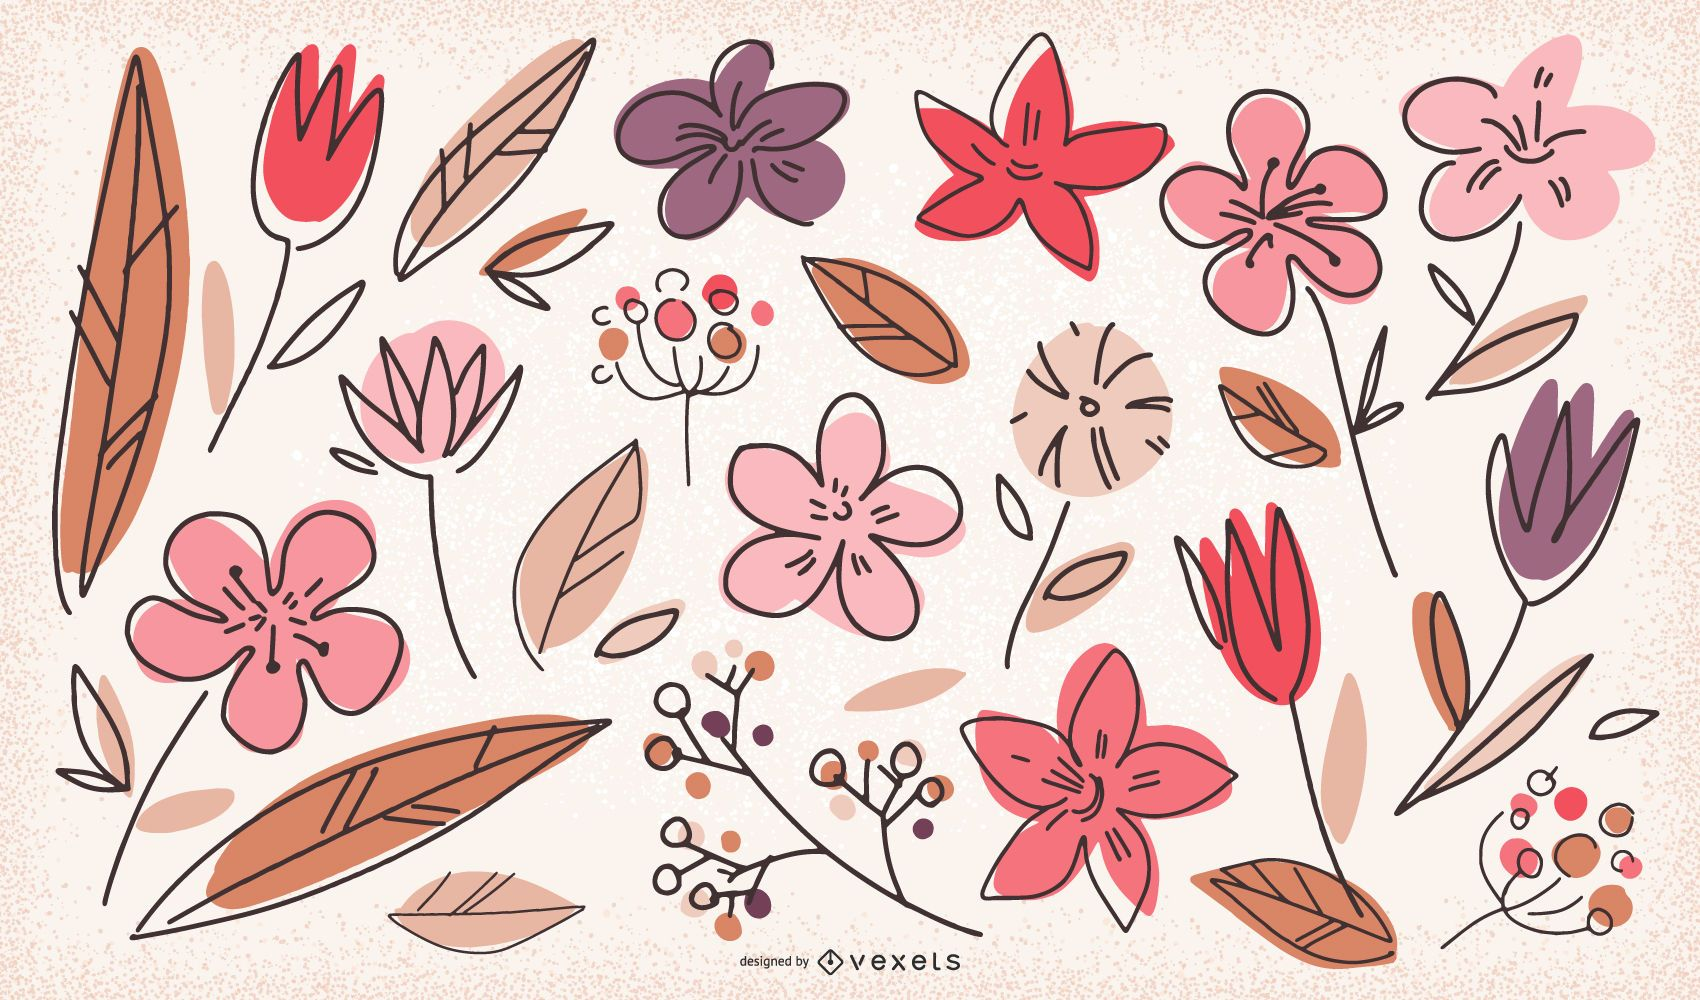 Doodle flowers collection